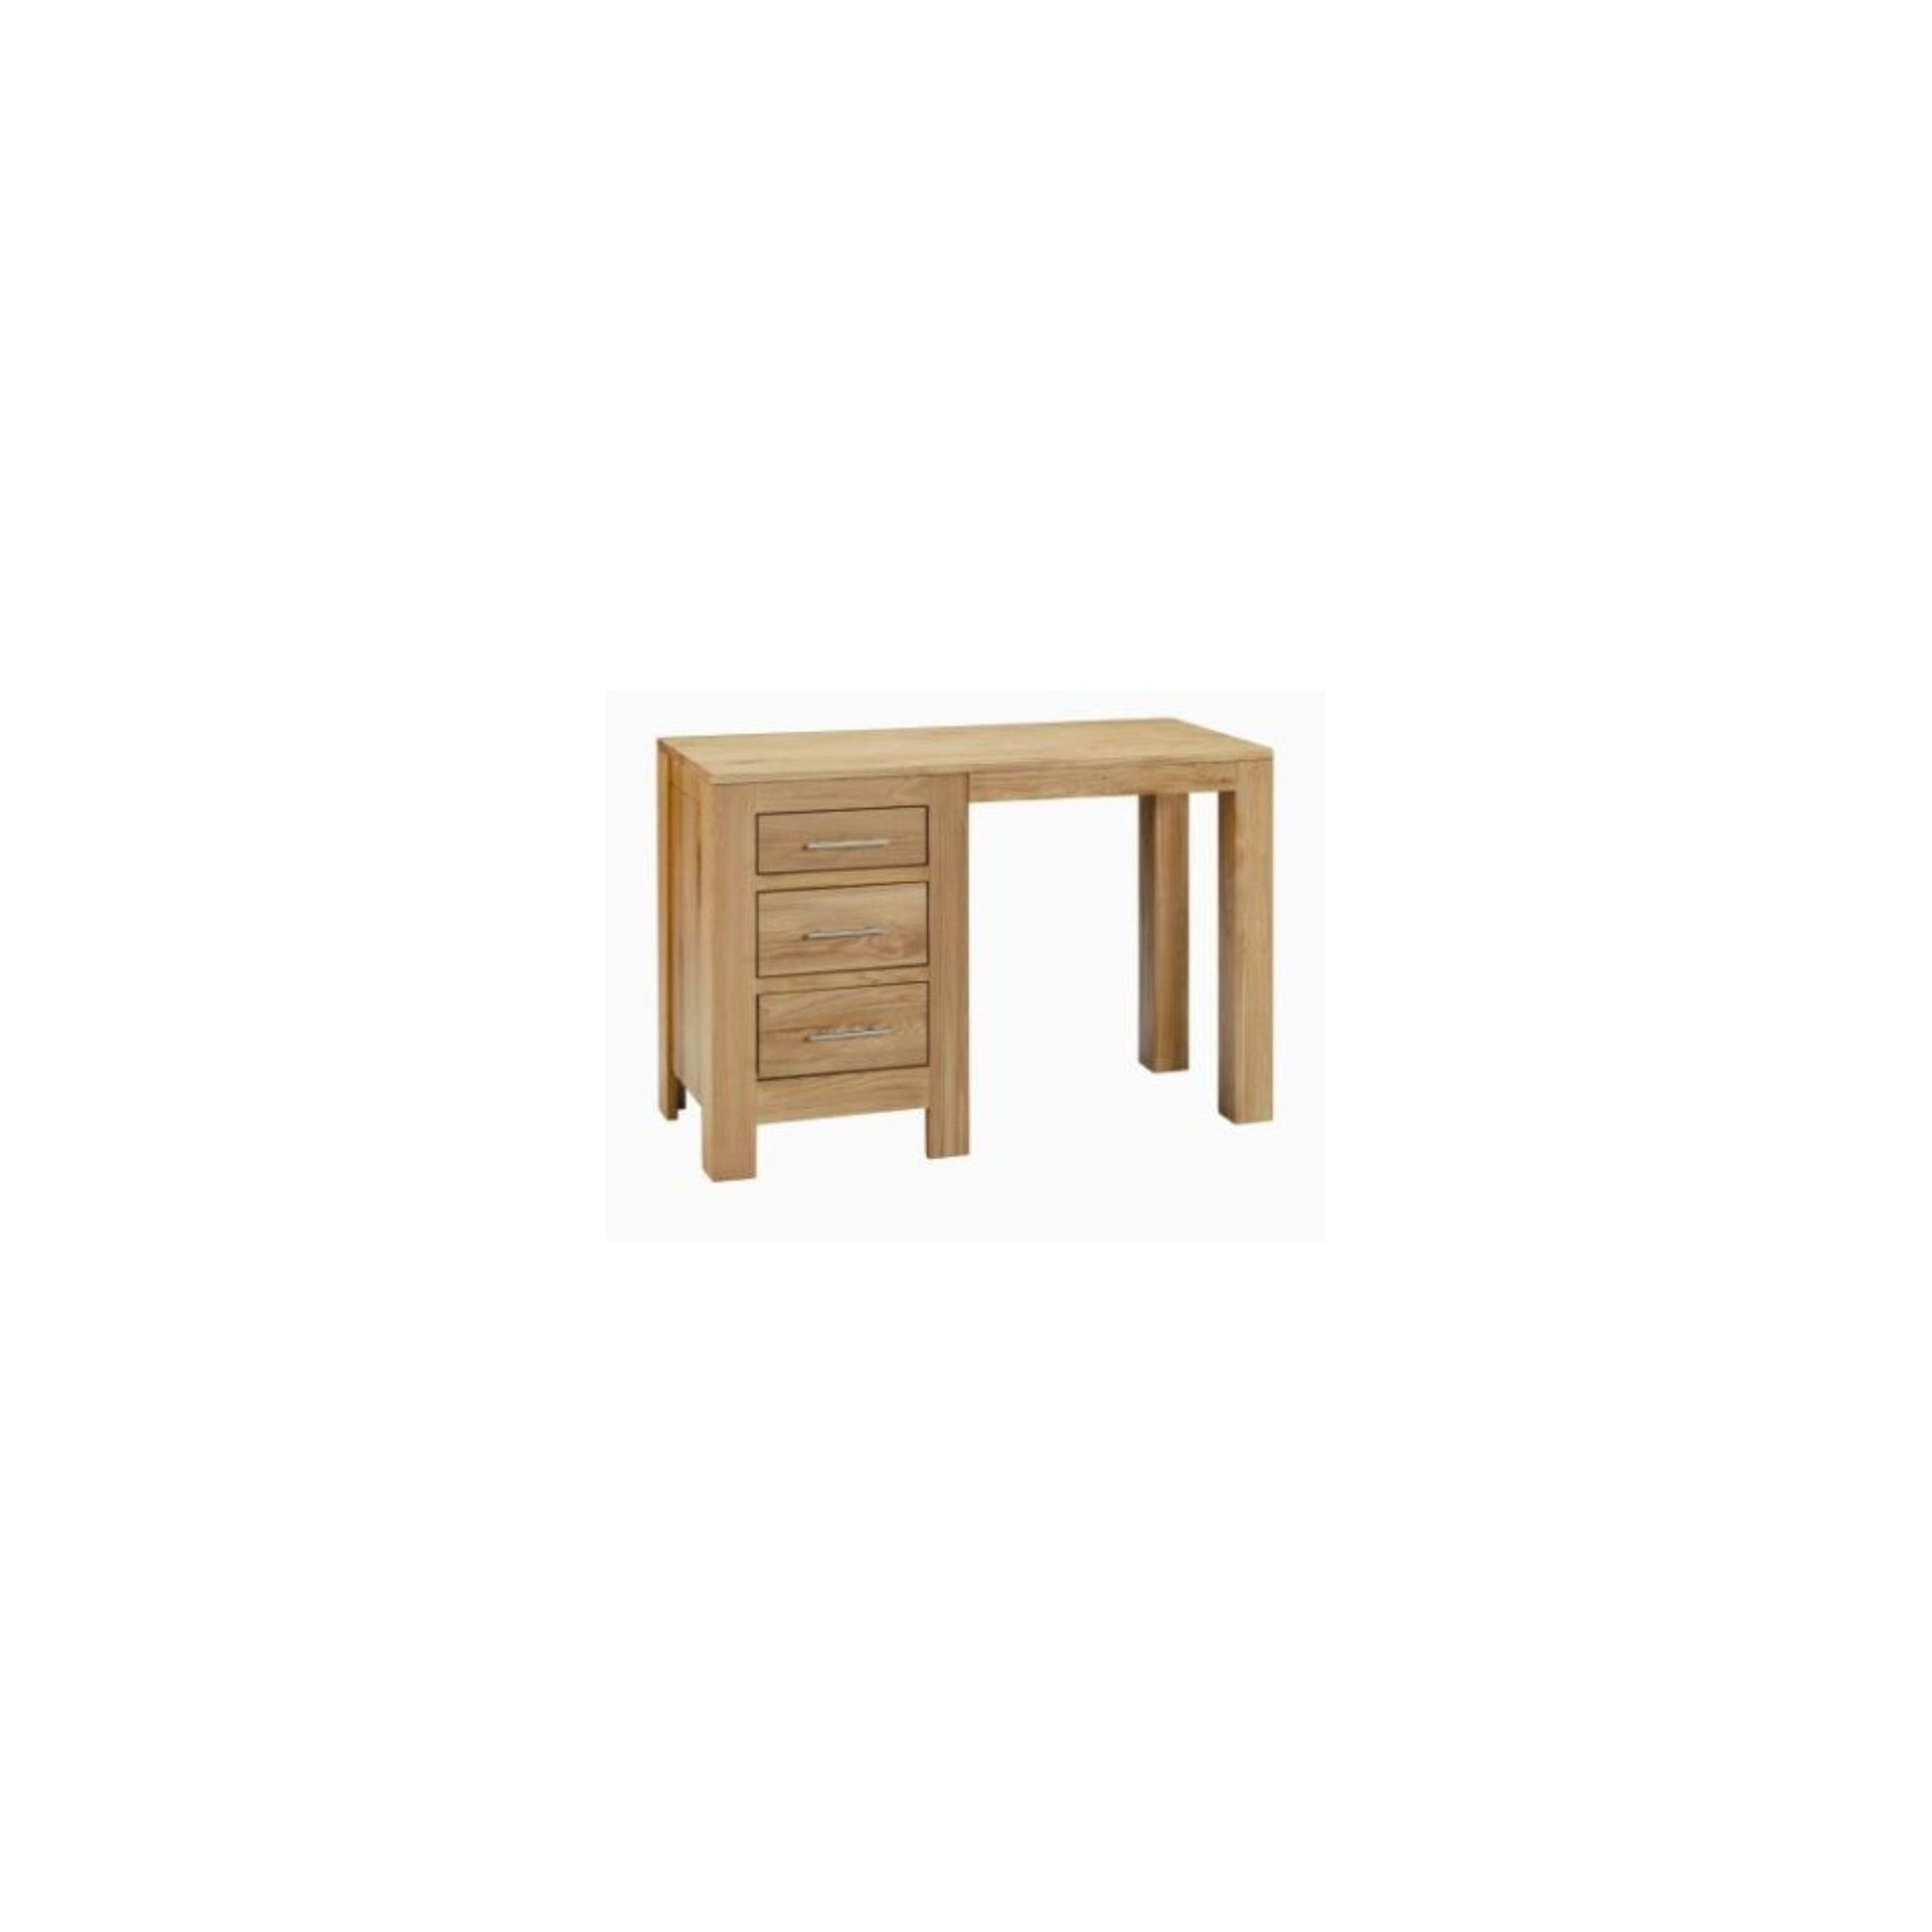 Kelburn Furniture Milano Single Pedestal Dressing Table at Tesco Direct